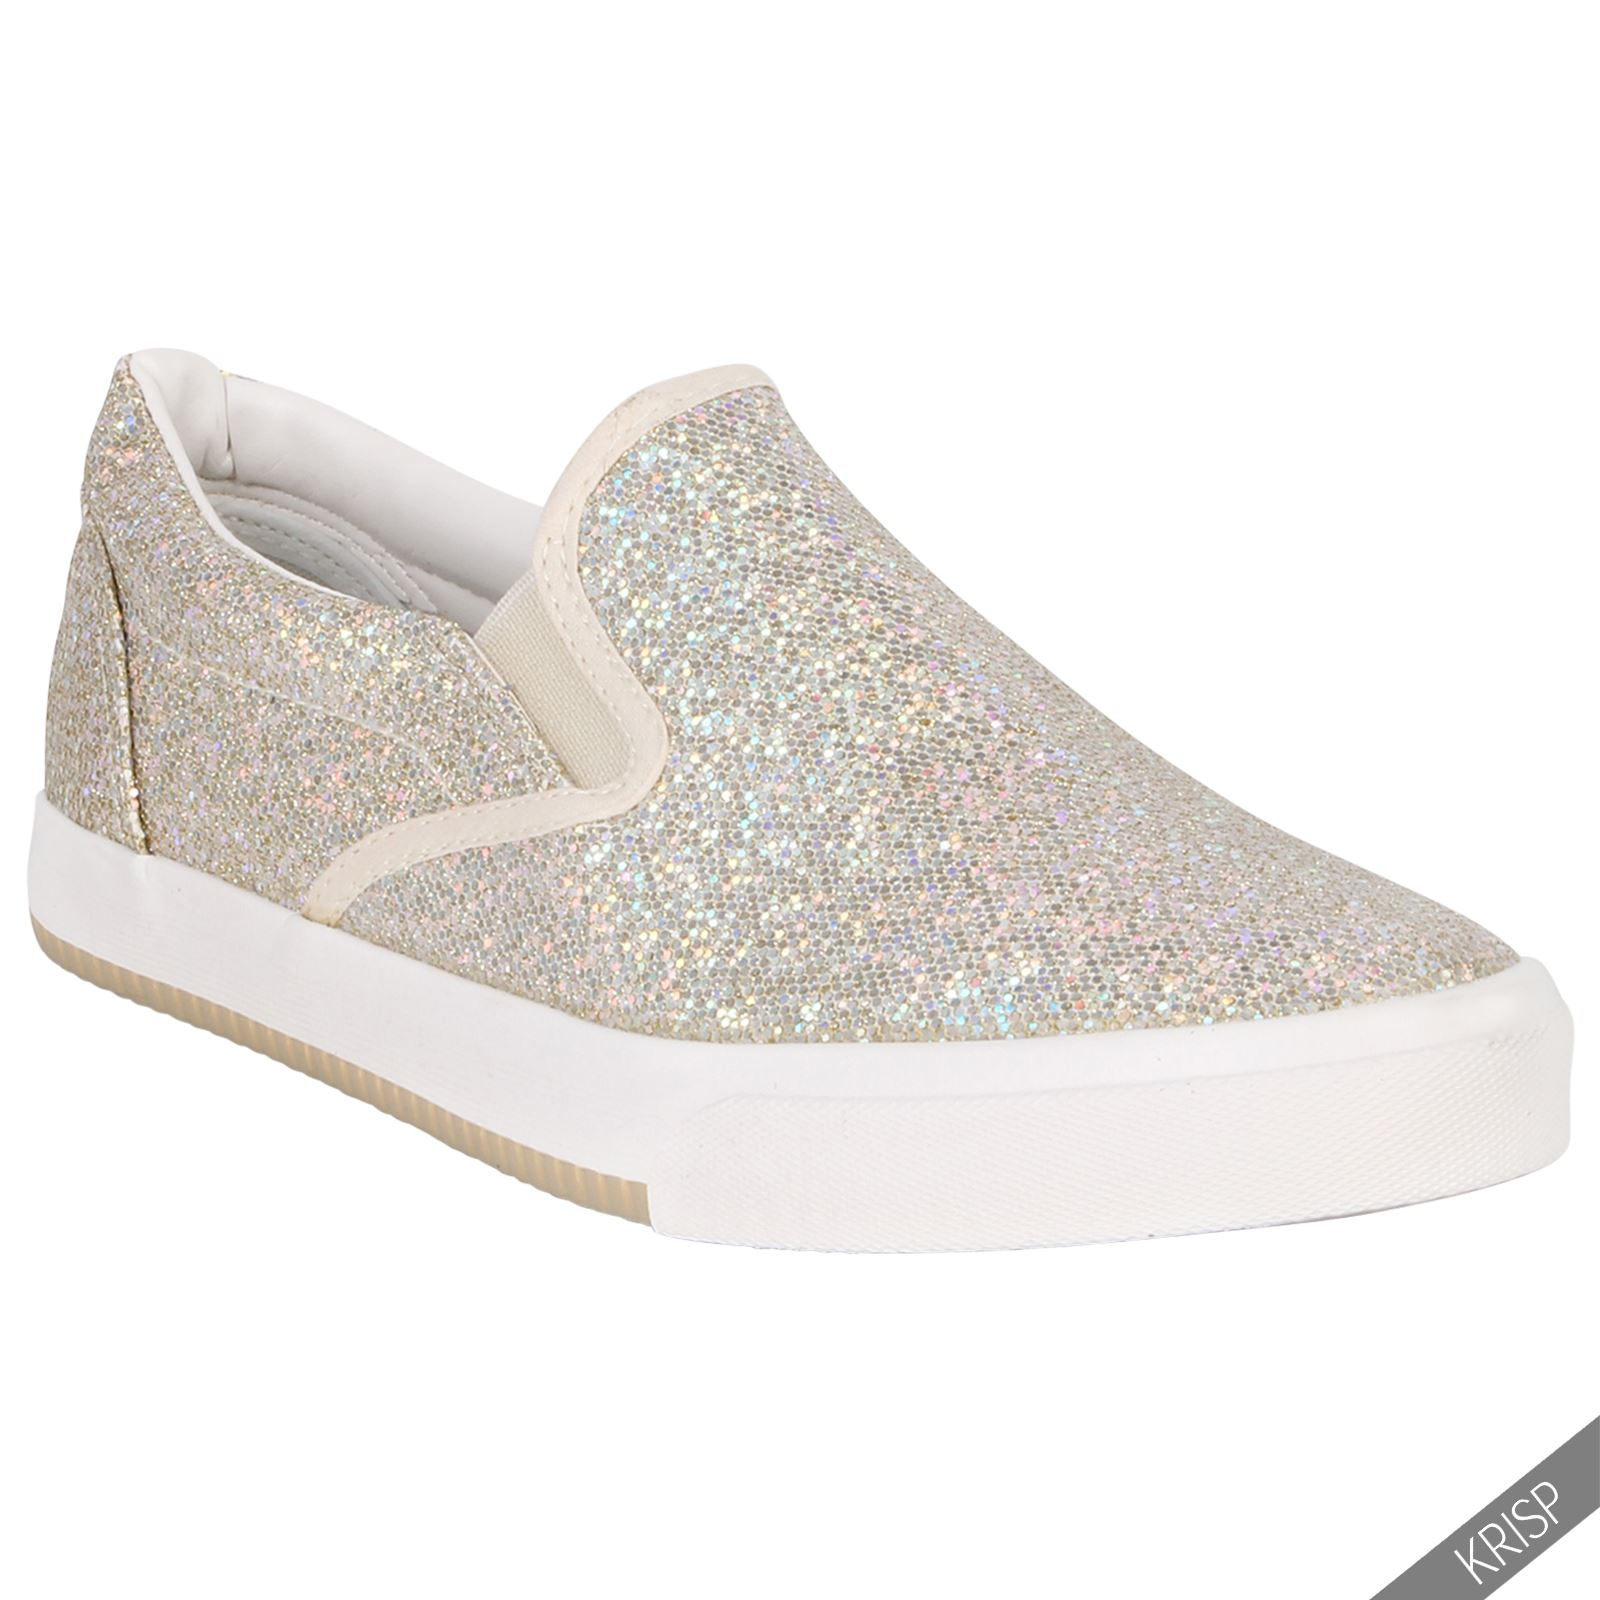 cbc5937a1a1c Women Ladies Floral Glitter Slip On Plimsolls Trainers Sneakers ...